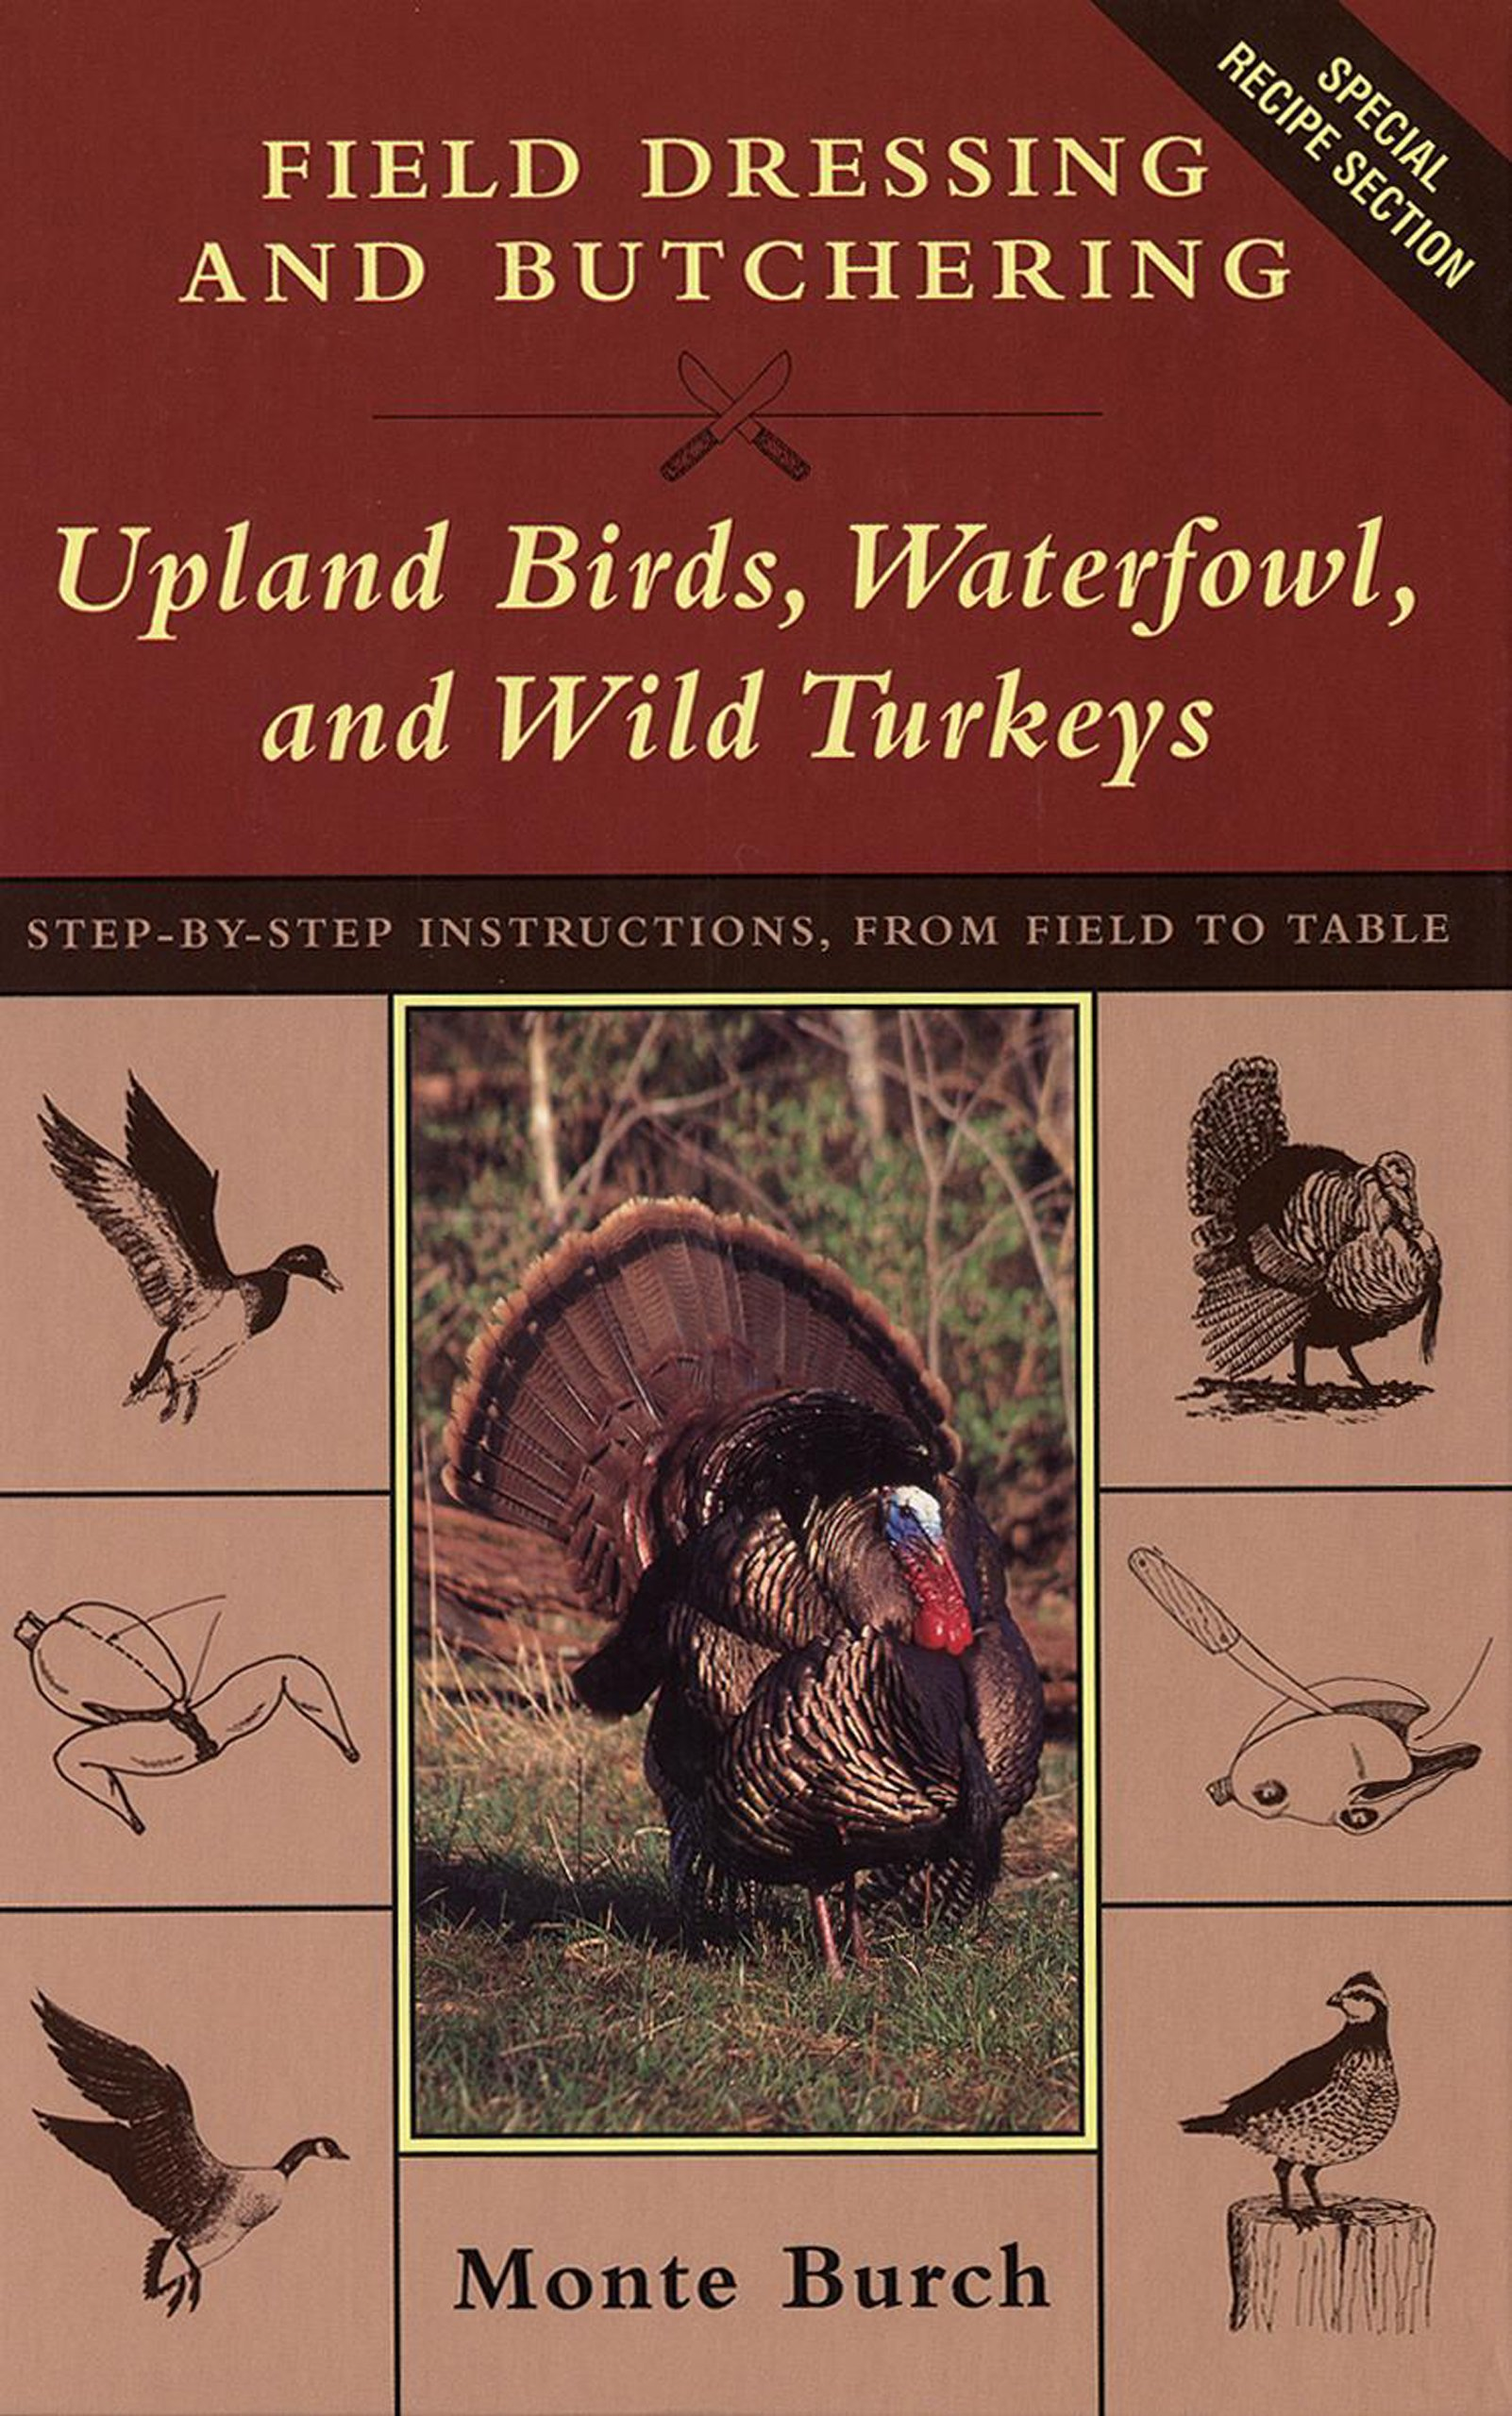 Download Field Dressing and Butchering Upland Birds, Waterfowl, and Wild Turkeys pdf